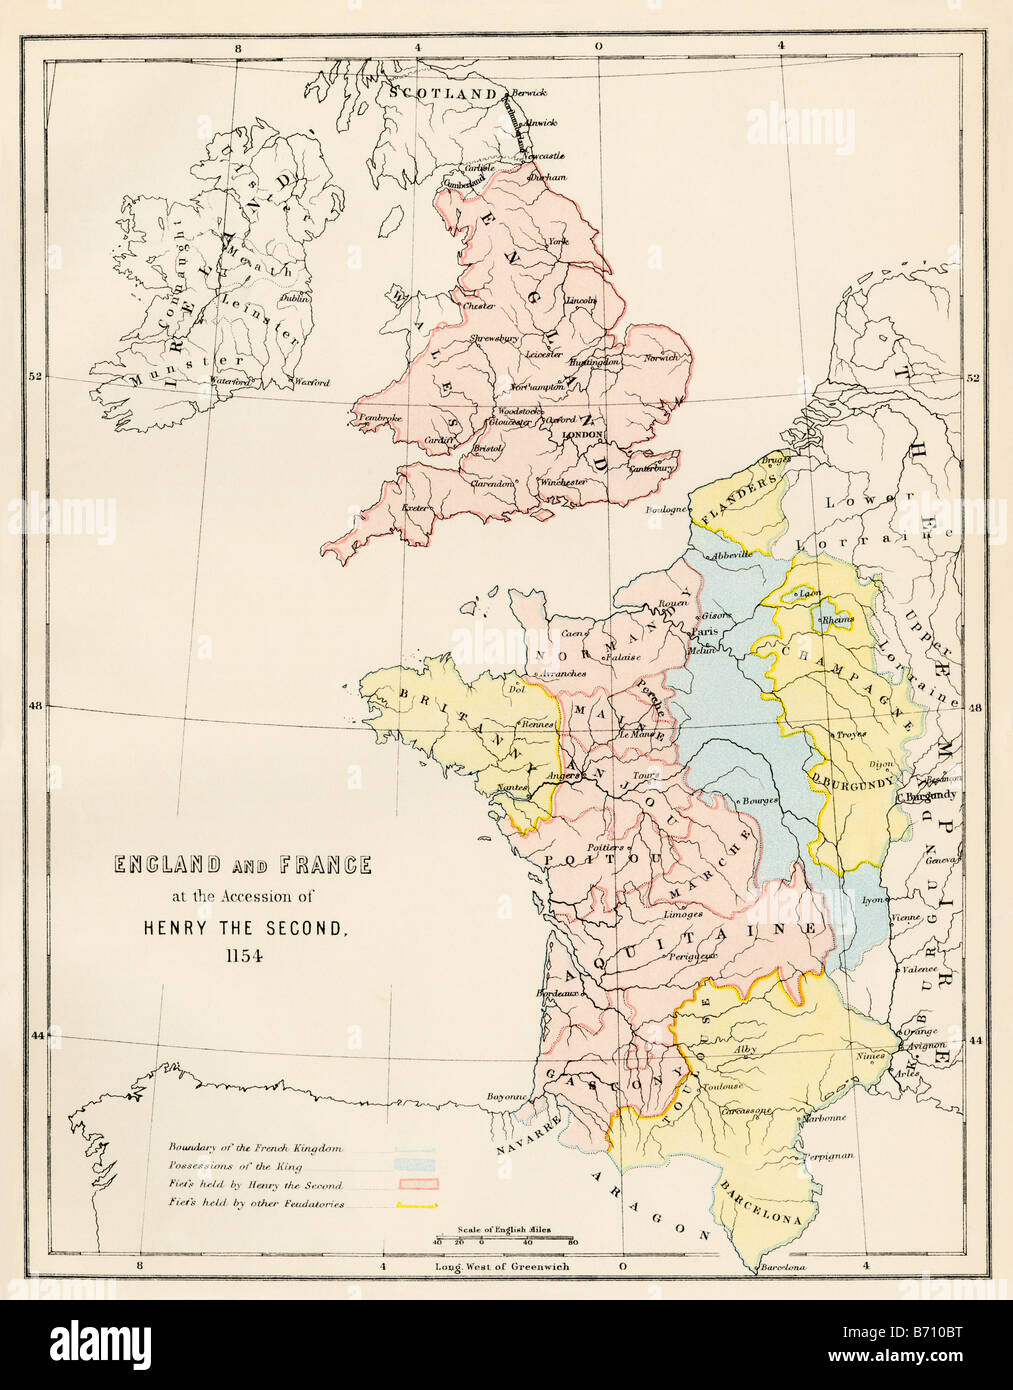 England And France At The Accession Of Henry Ii 1154 Italy Map Or